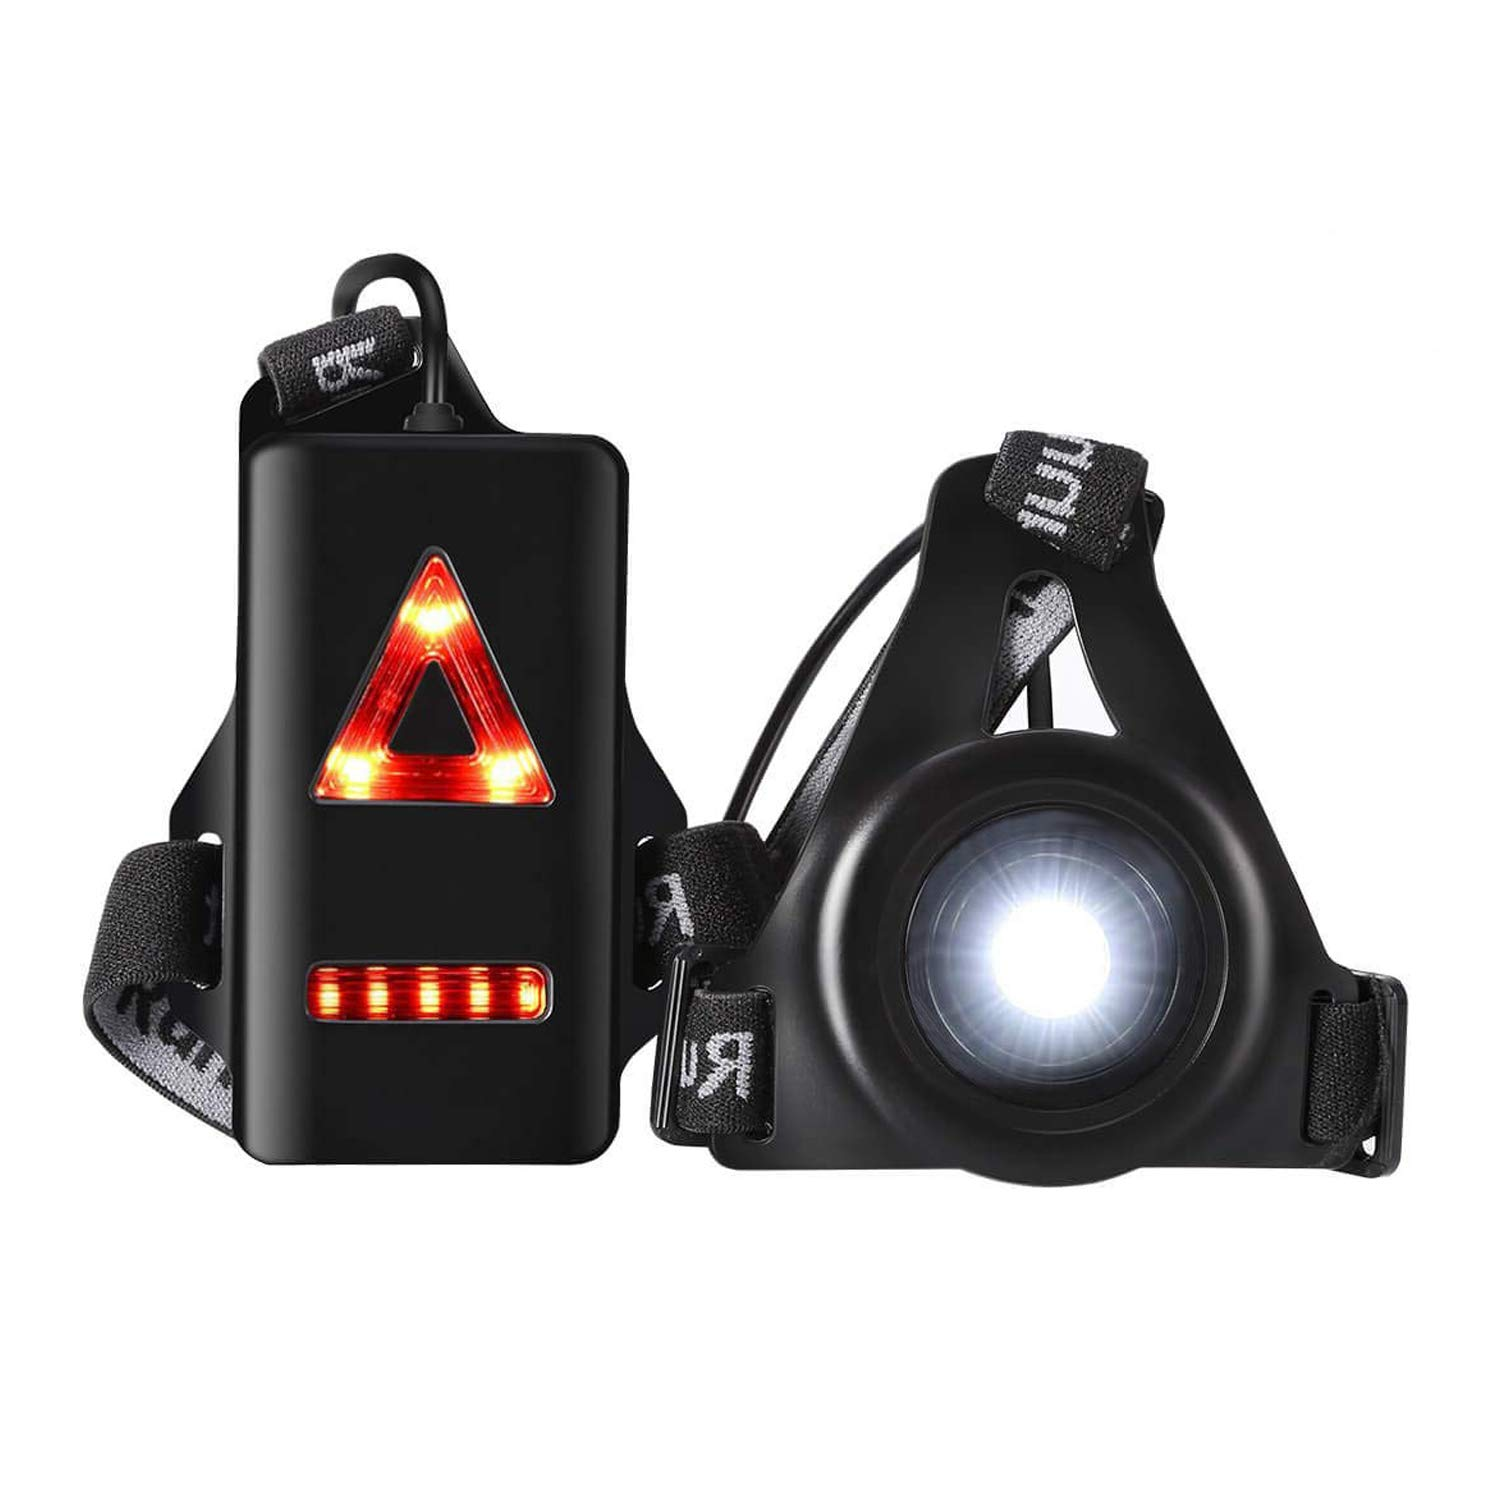 Black Jhua Outdoor Night Running Lights Jogging Walking Adventure and More Outdoor Sports Hiking LED Chest Light Back Warning Light with Rechargeable Battery for Camping Running